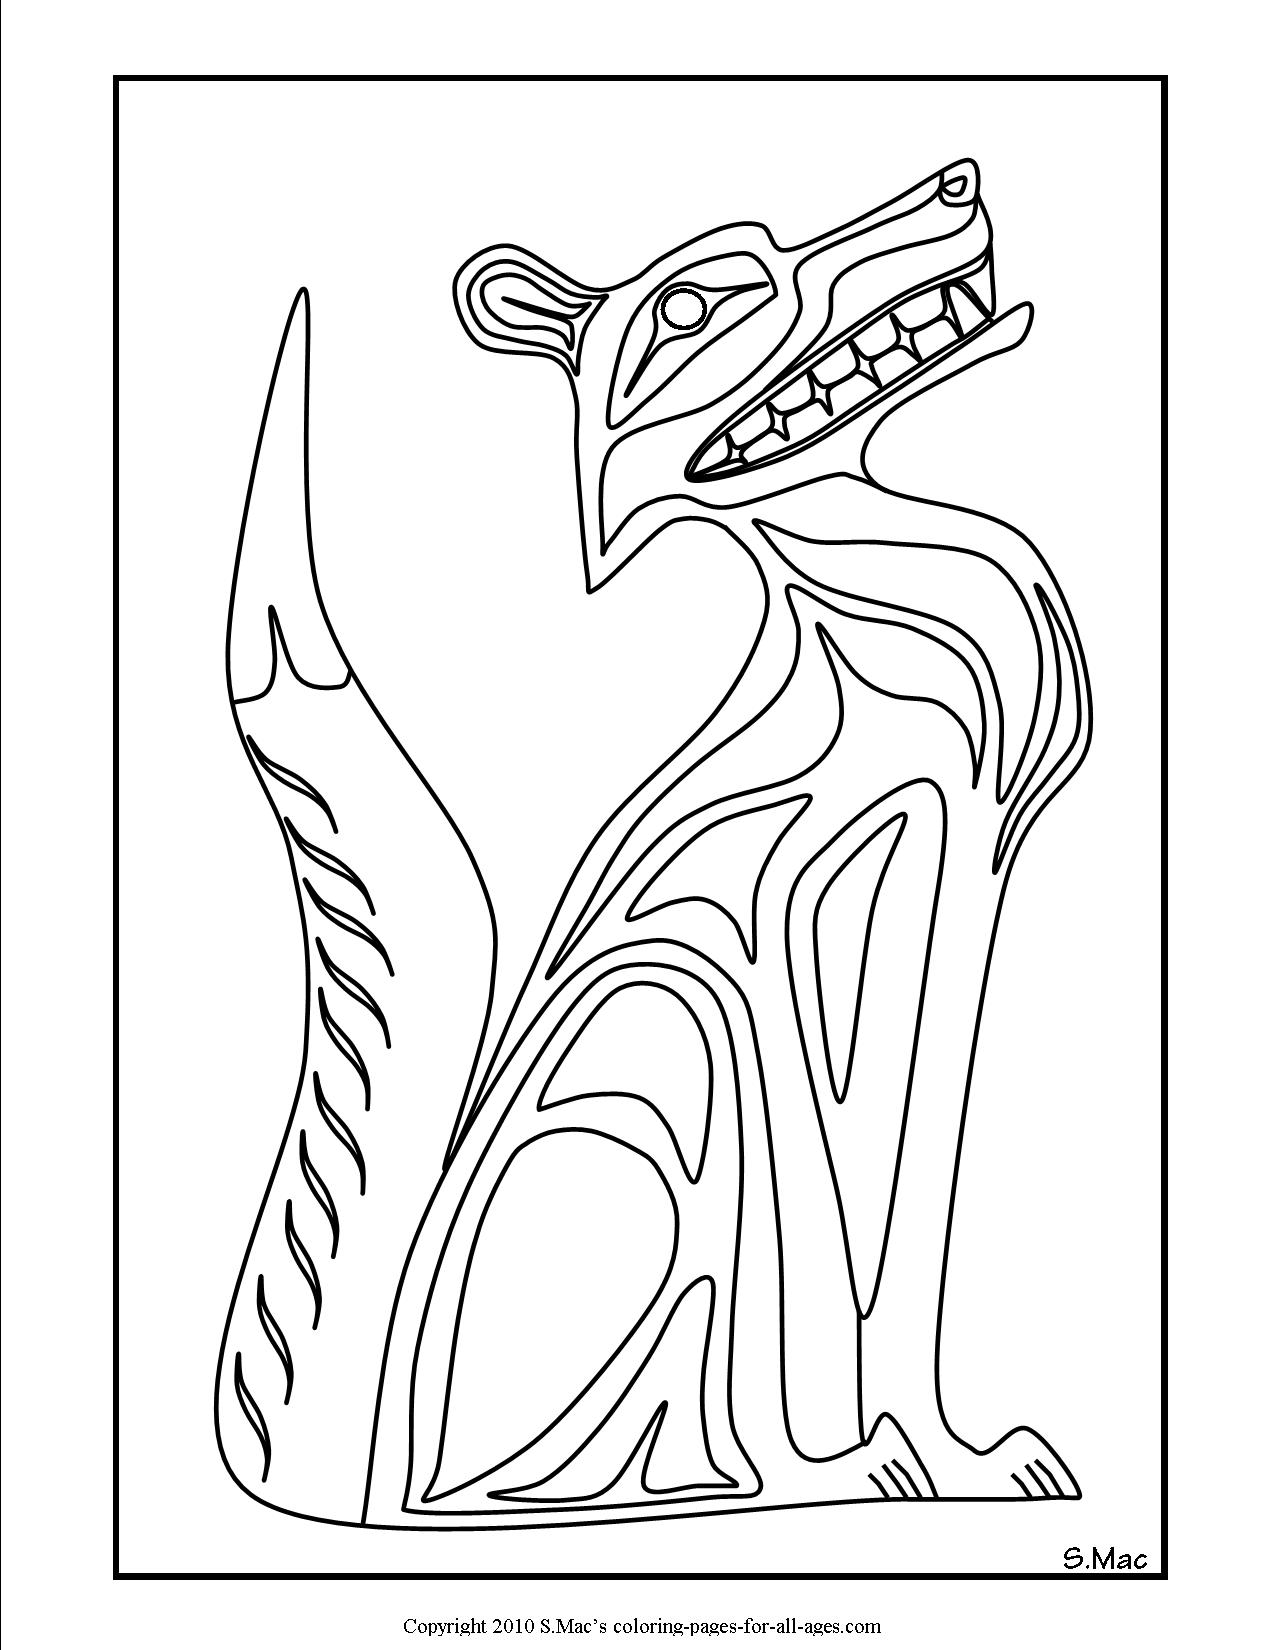 native art coloring pages indian native chief profile native american adult coloring native art pages